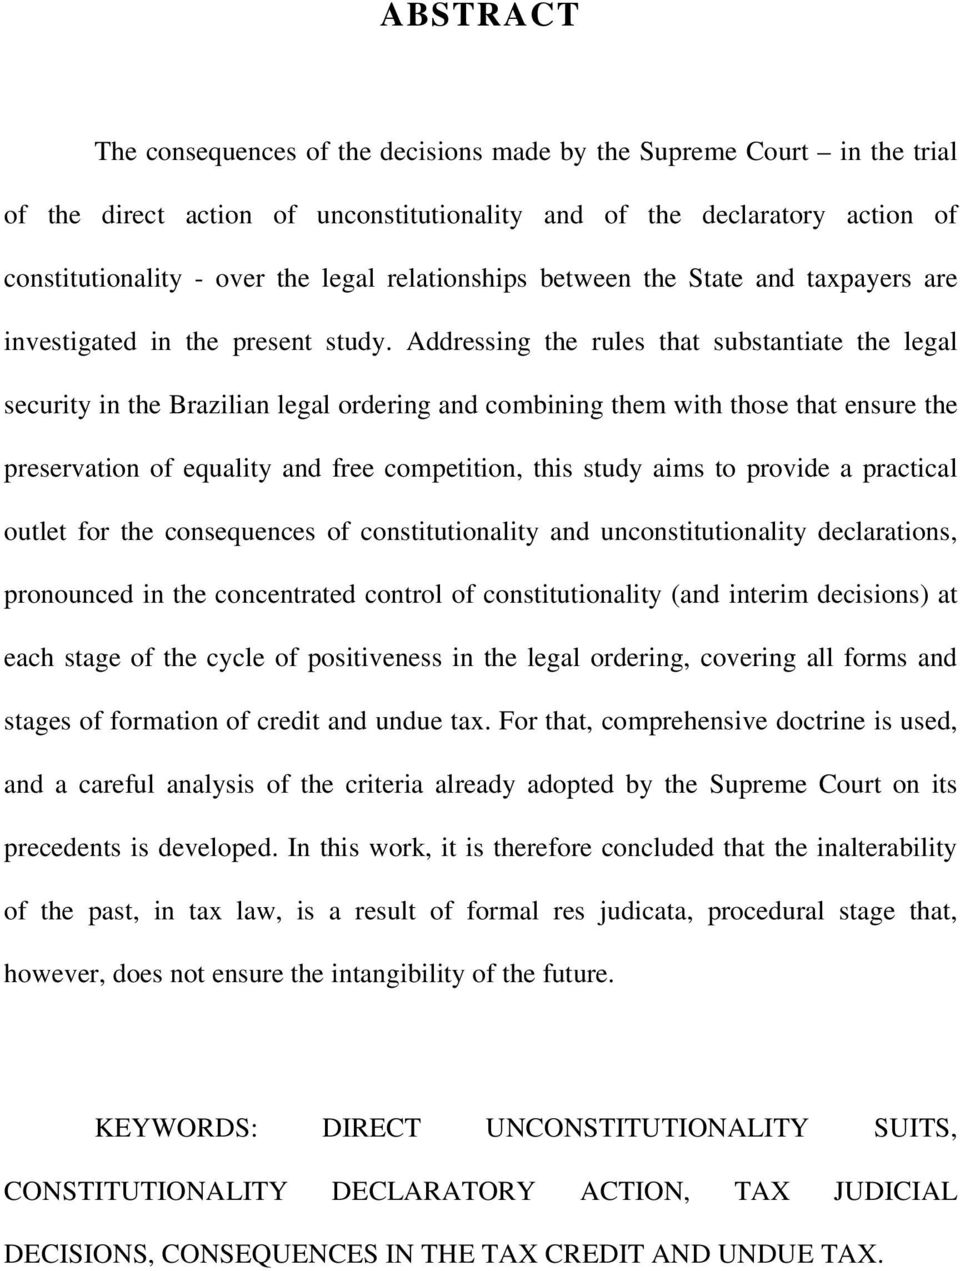 Addressing the rules that substantiate the legal security in the Brazilian legal ordering and combining them with those that ensure the preservation of equality and free competition, this study aims